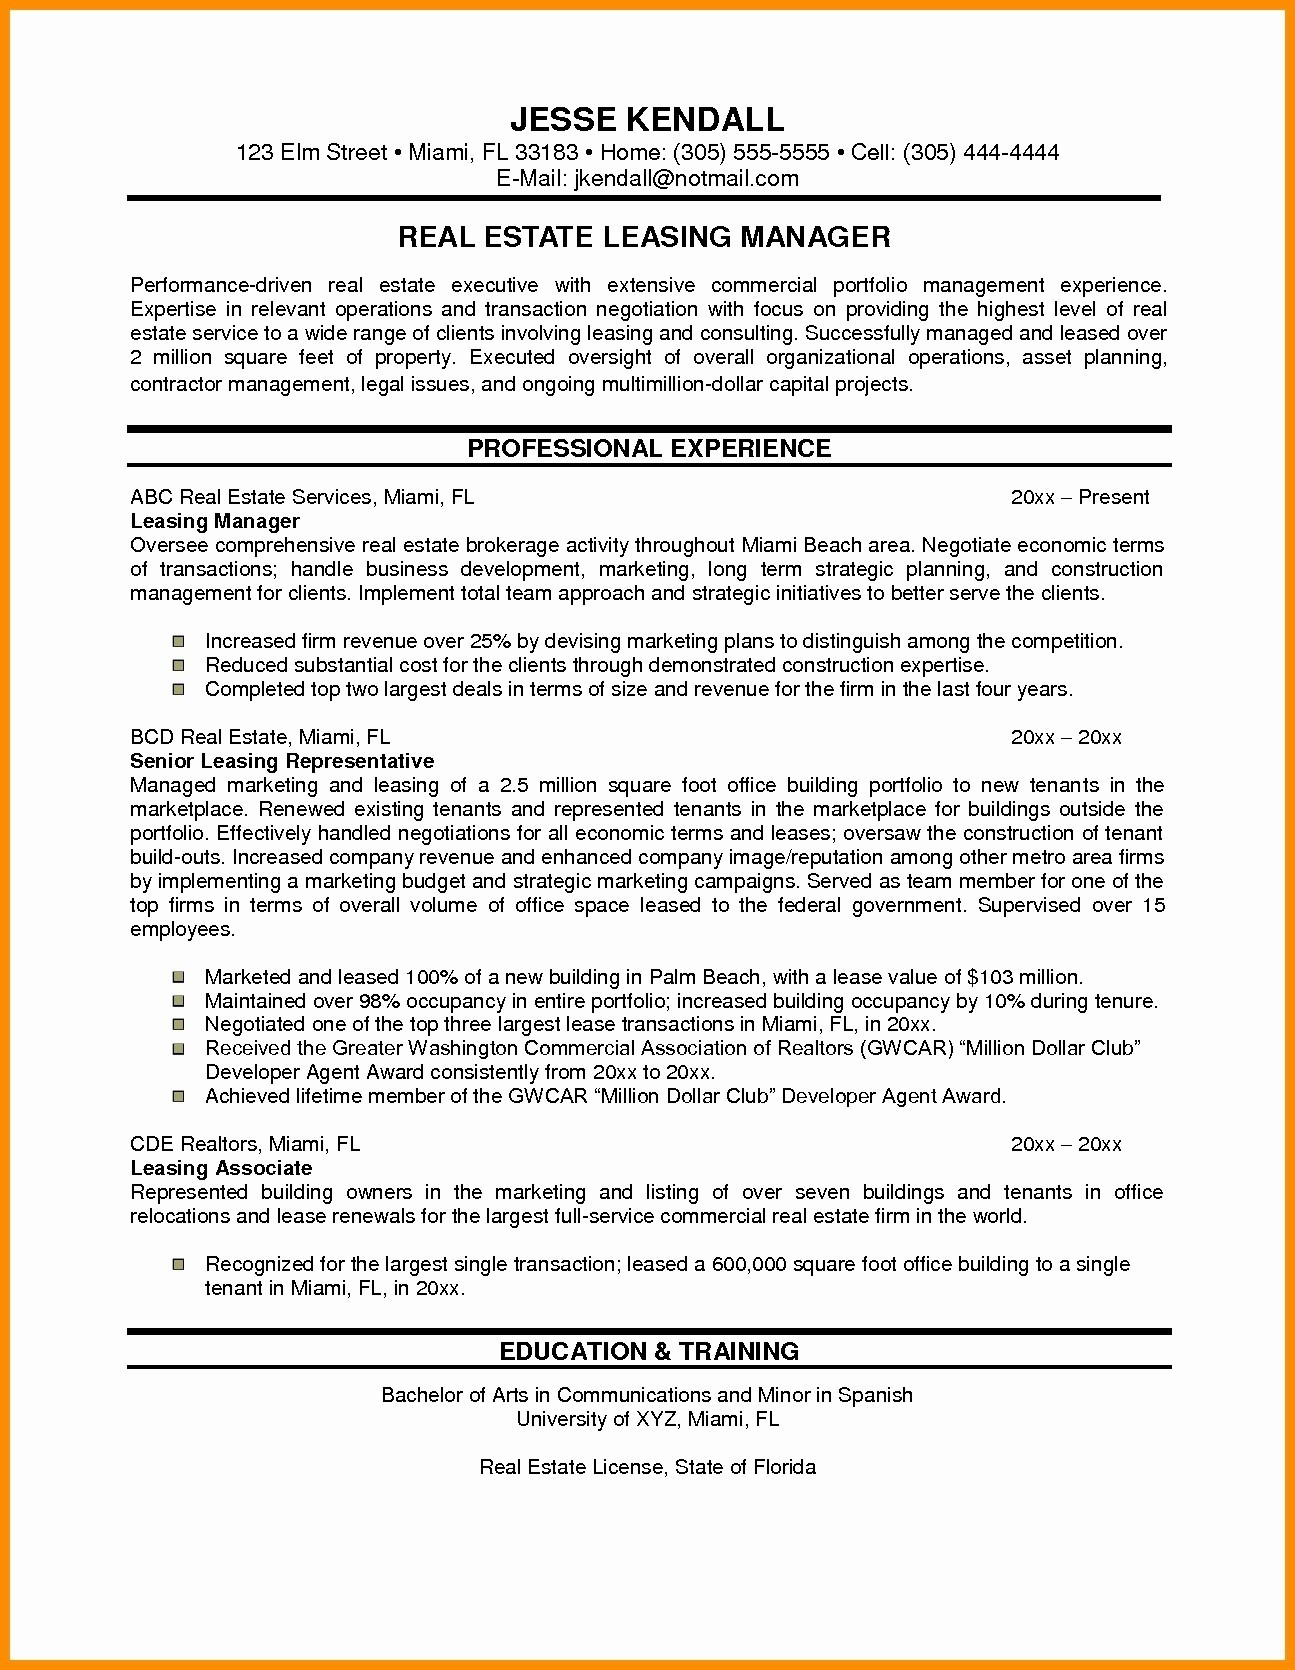 Real Estate Office Manager Resume - Resume for Sales Executive In Real Estate Resume Resume Examples